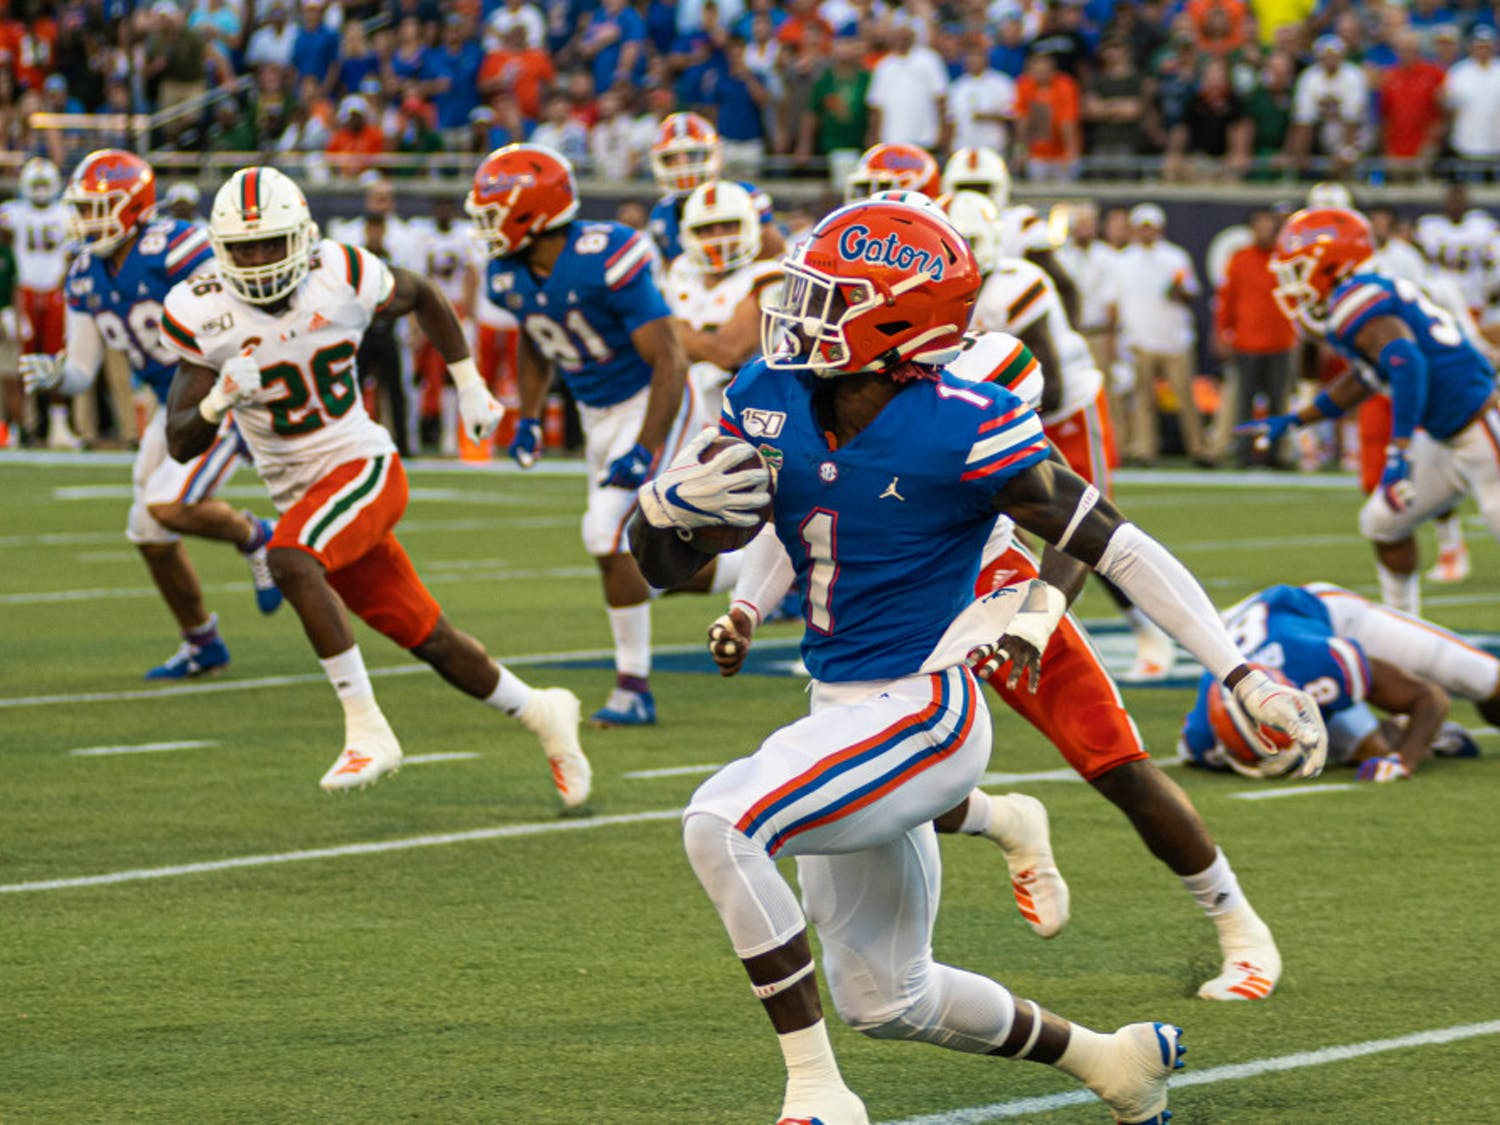 Receiver Kadarius Toney, pictured against Miami in 2019, was drafted 20th overall in the NFL Draft Thursday night and is now a member of the New York Giants.